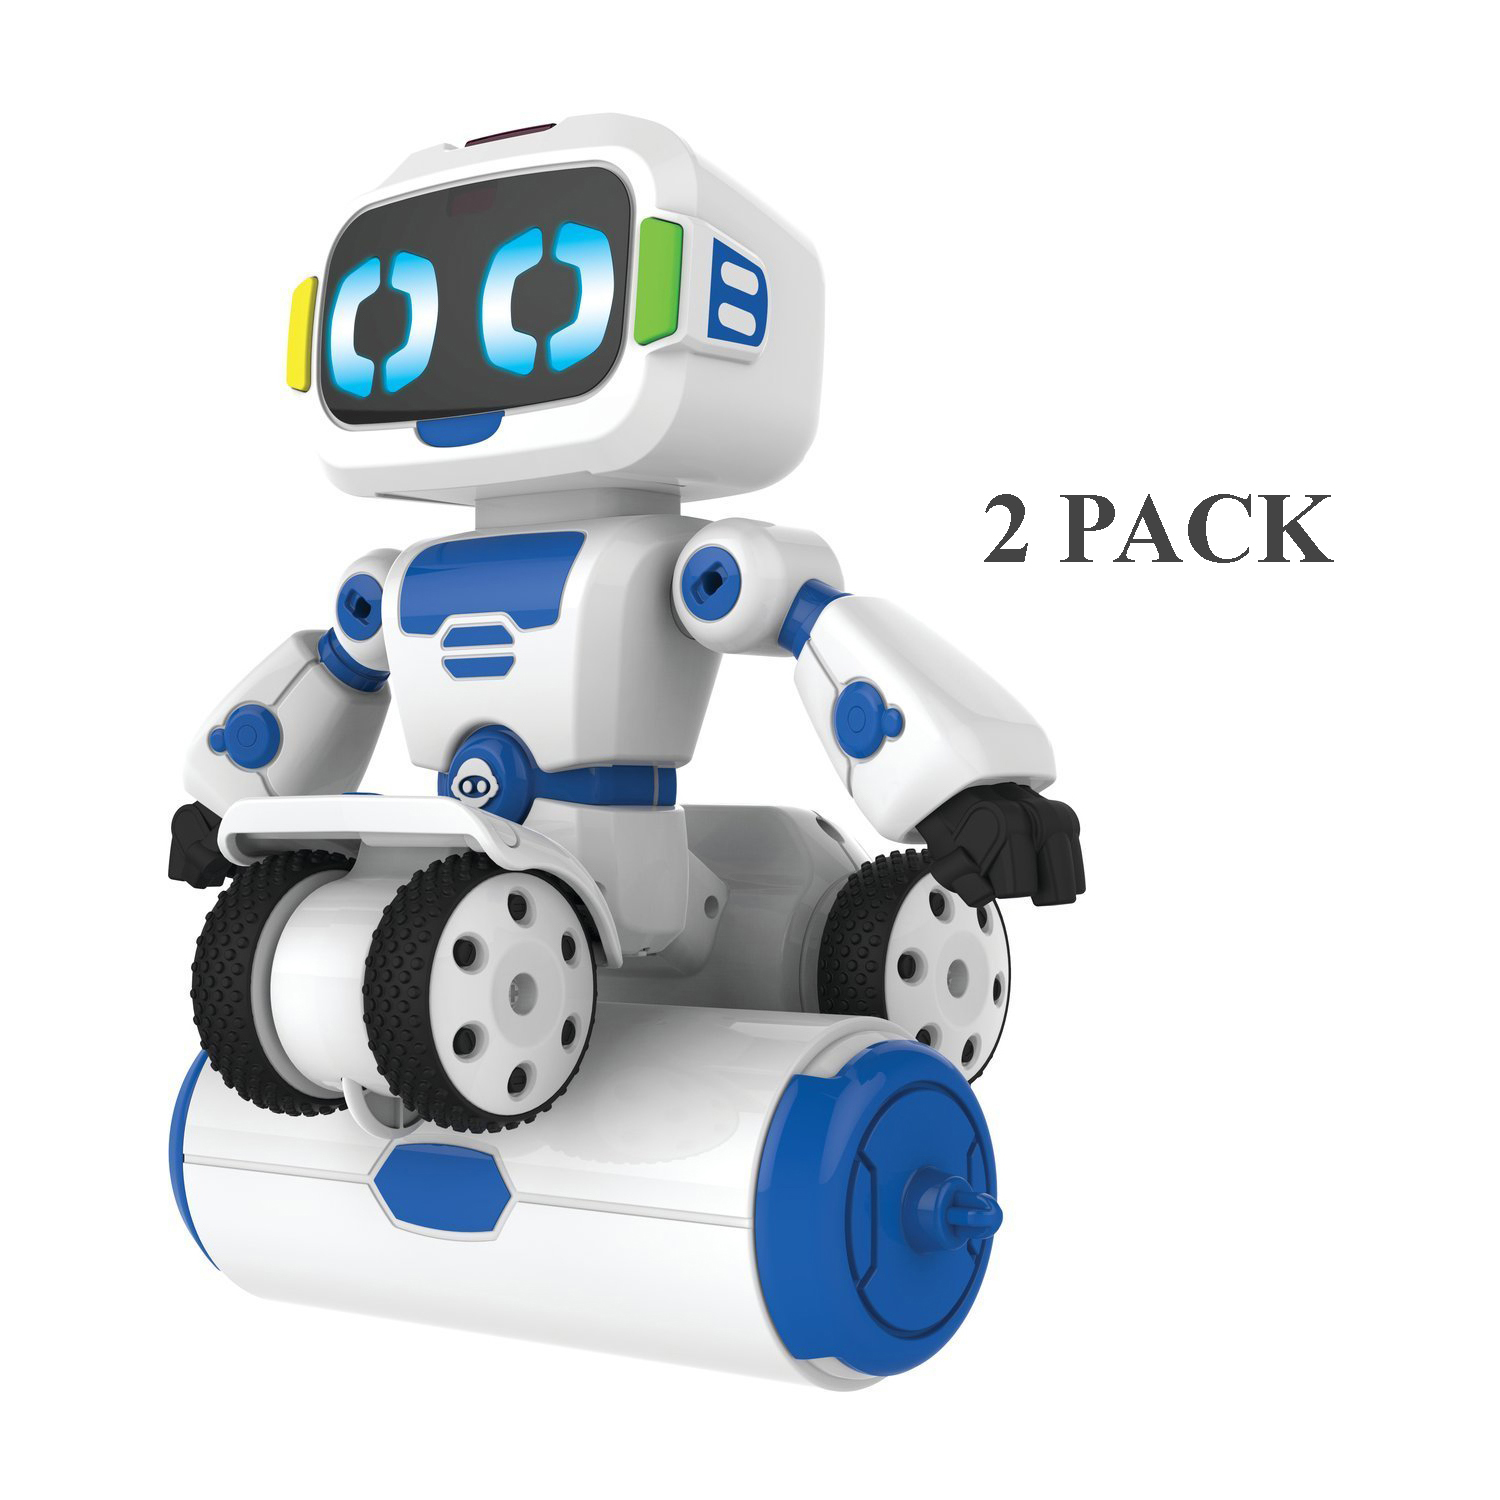 2-Pack WowWee Tipster Toy Balancing Robot Friend w  Remote Control White Blue by WowWee